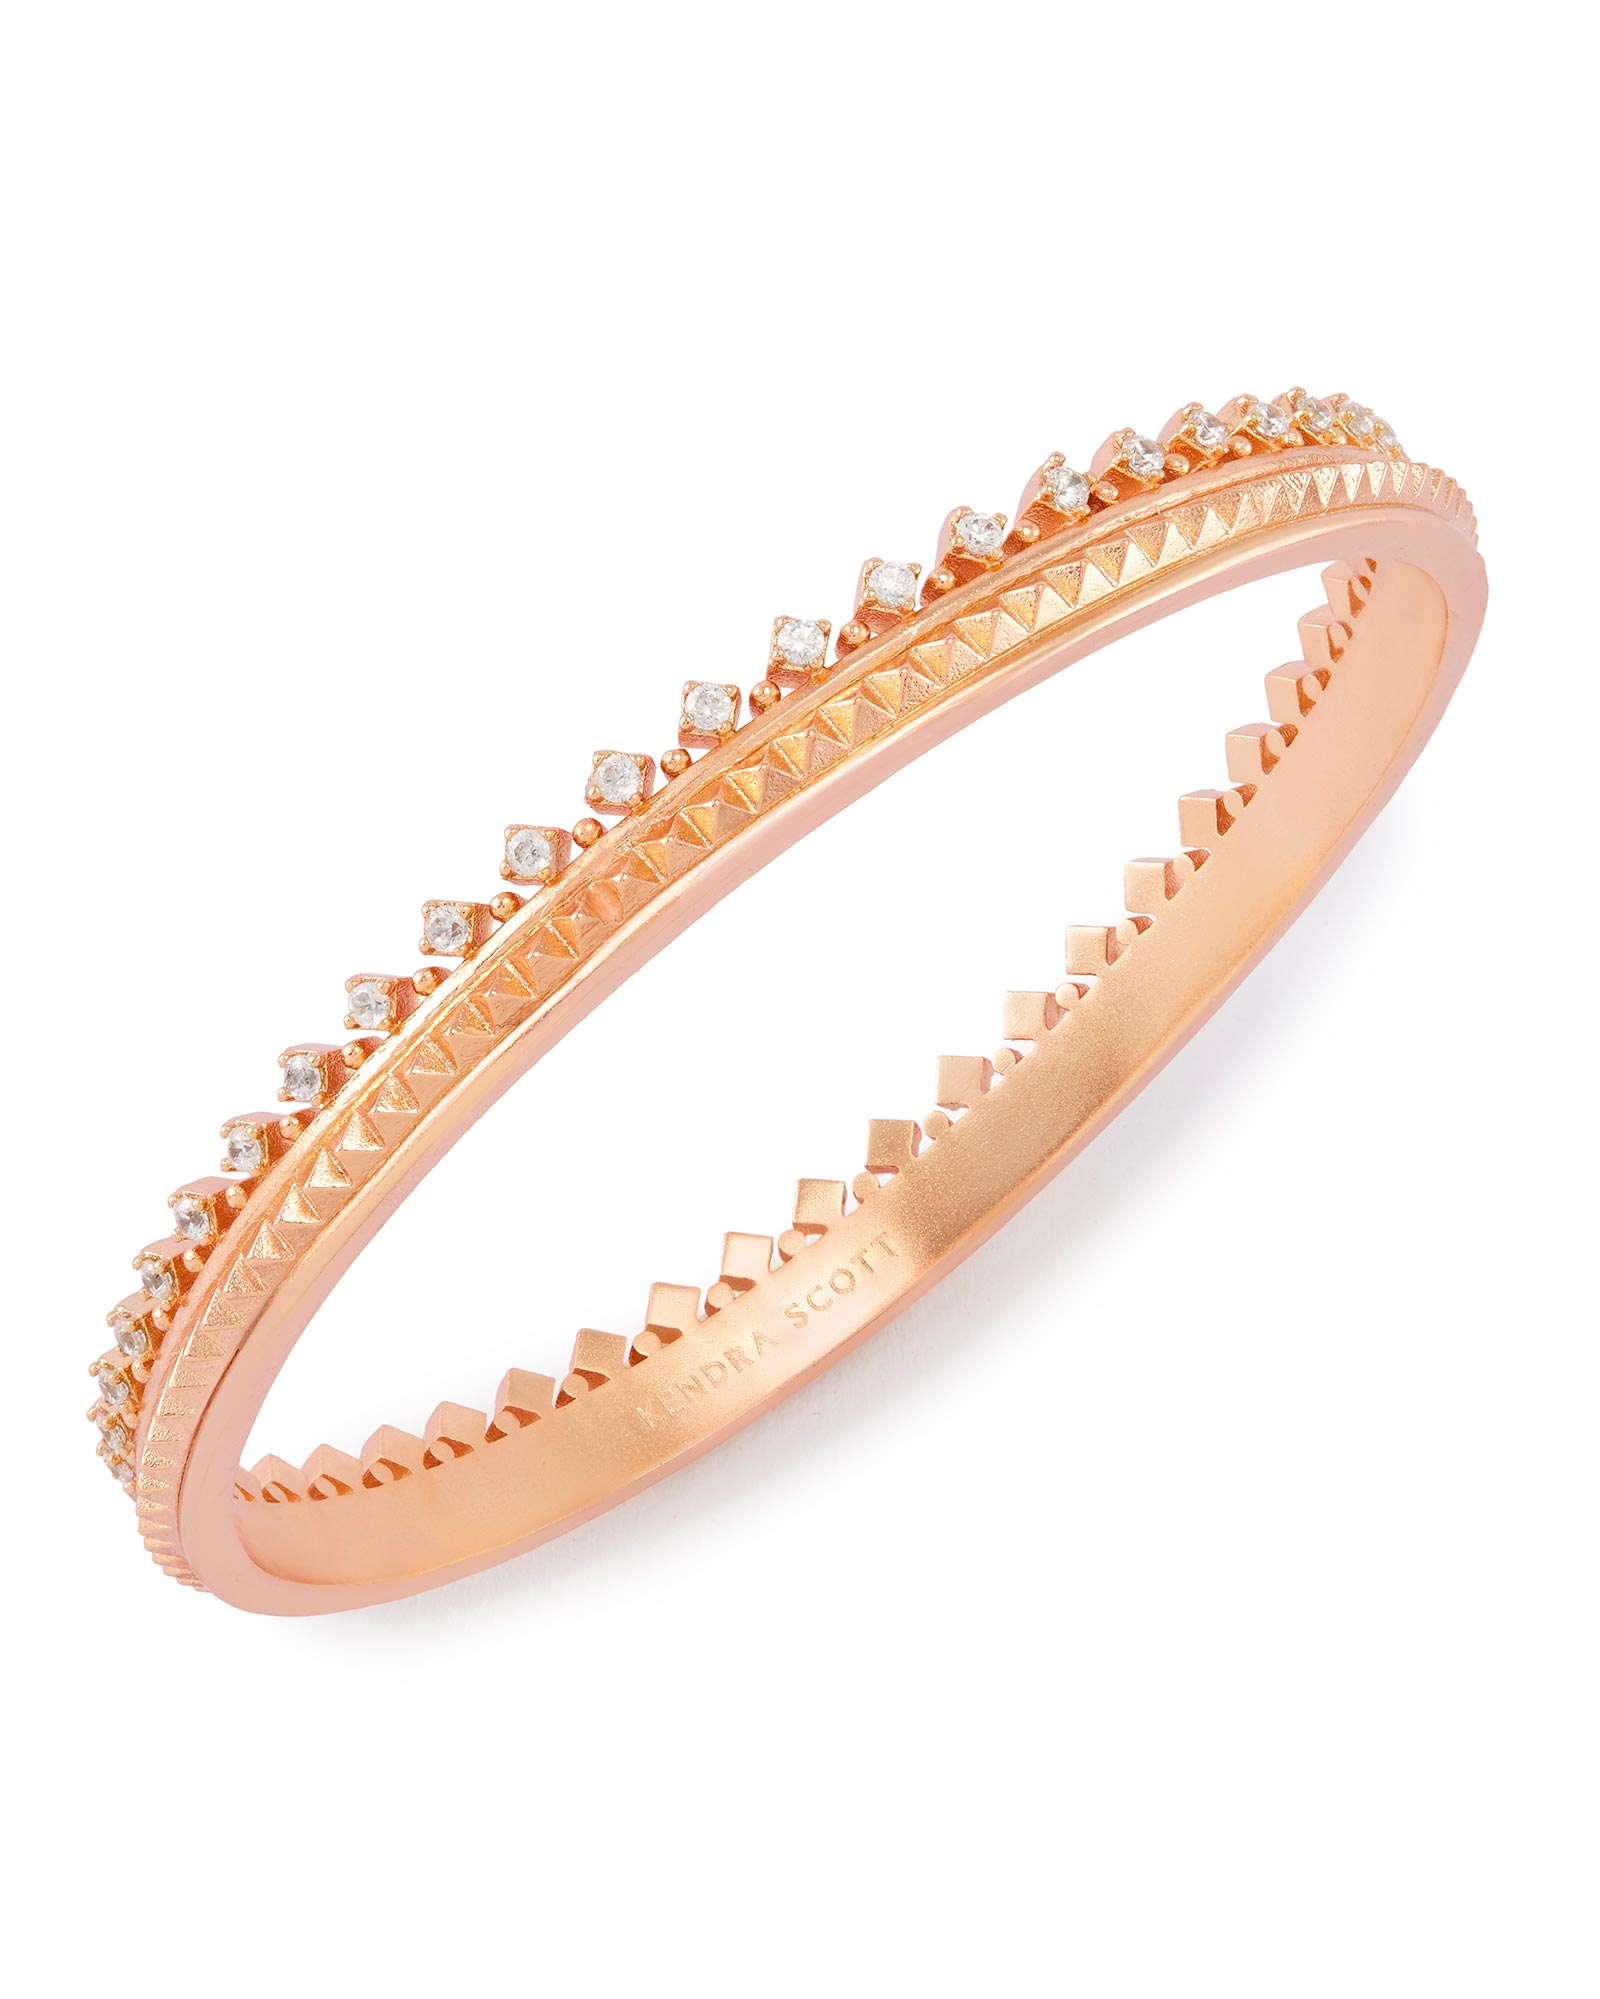 Mary Caroline Bangle Bracelet in Rose Gold